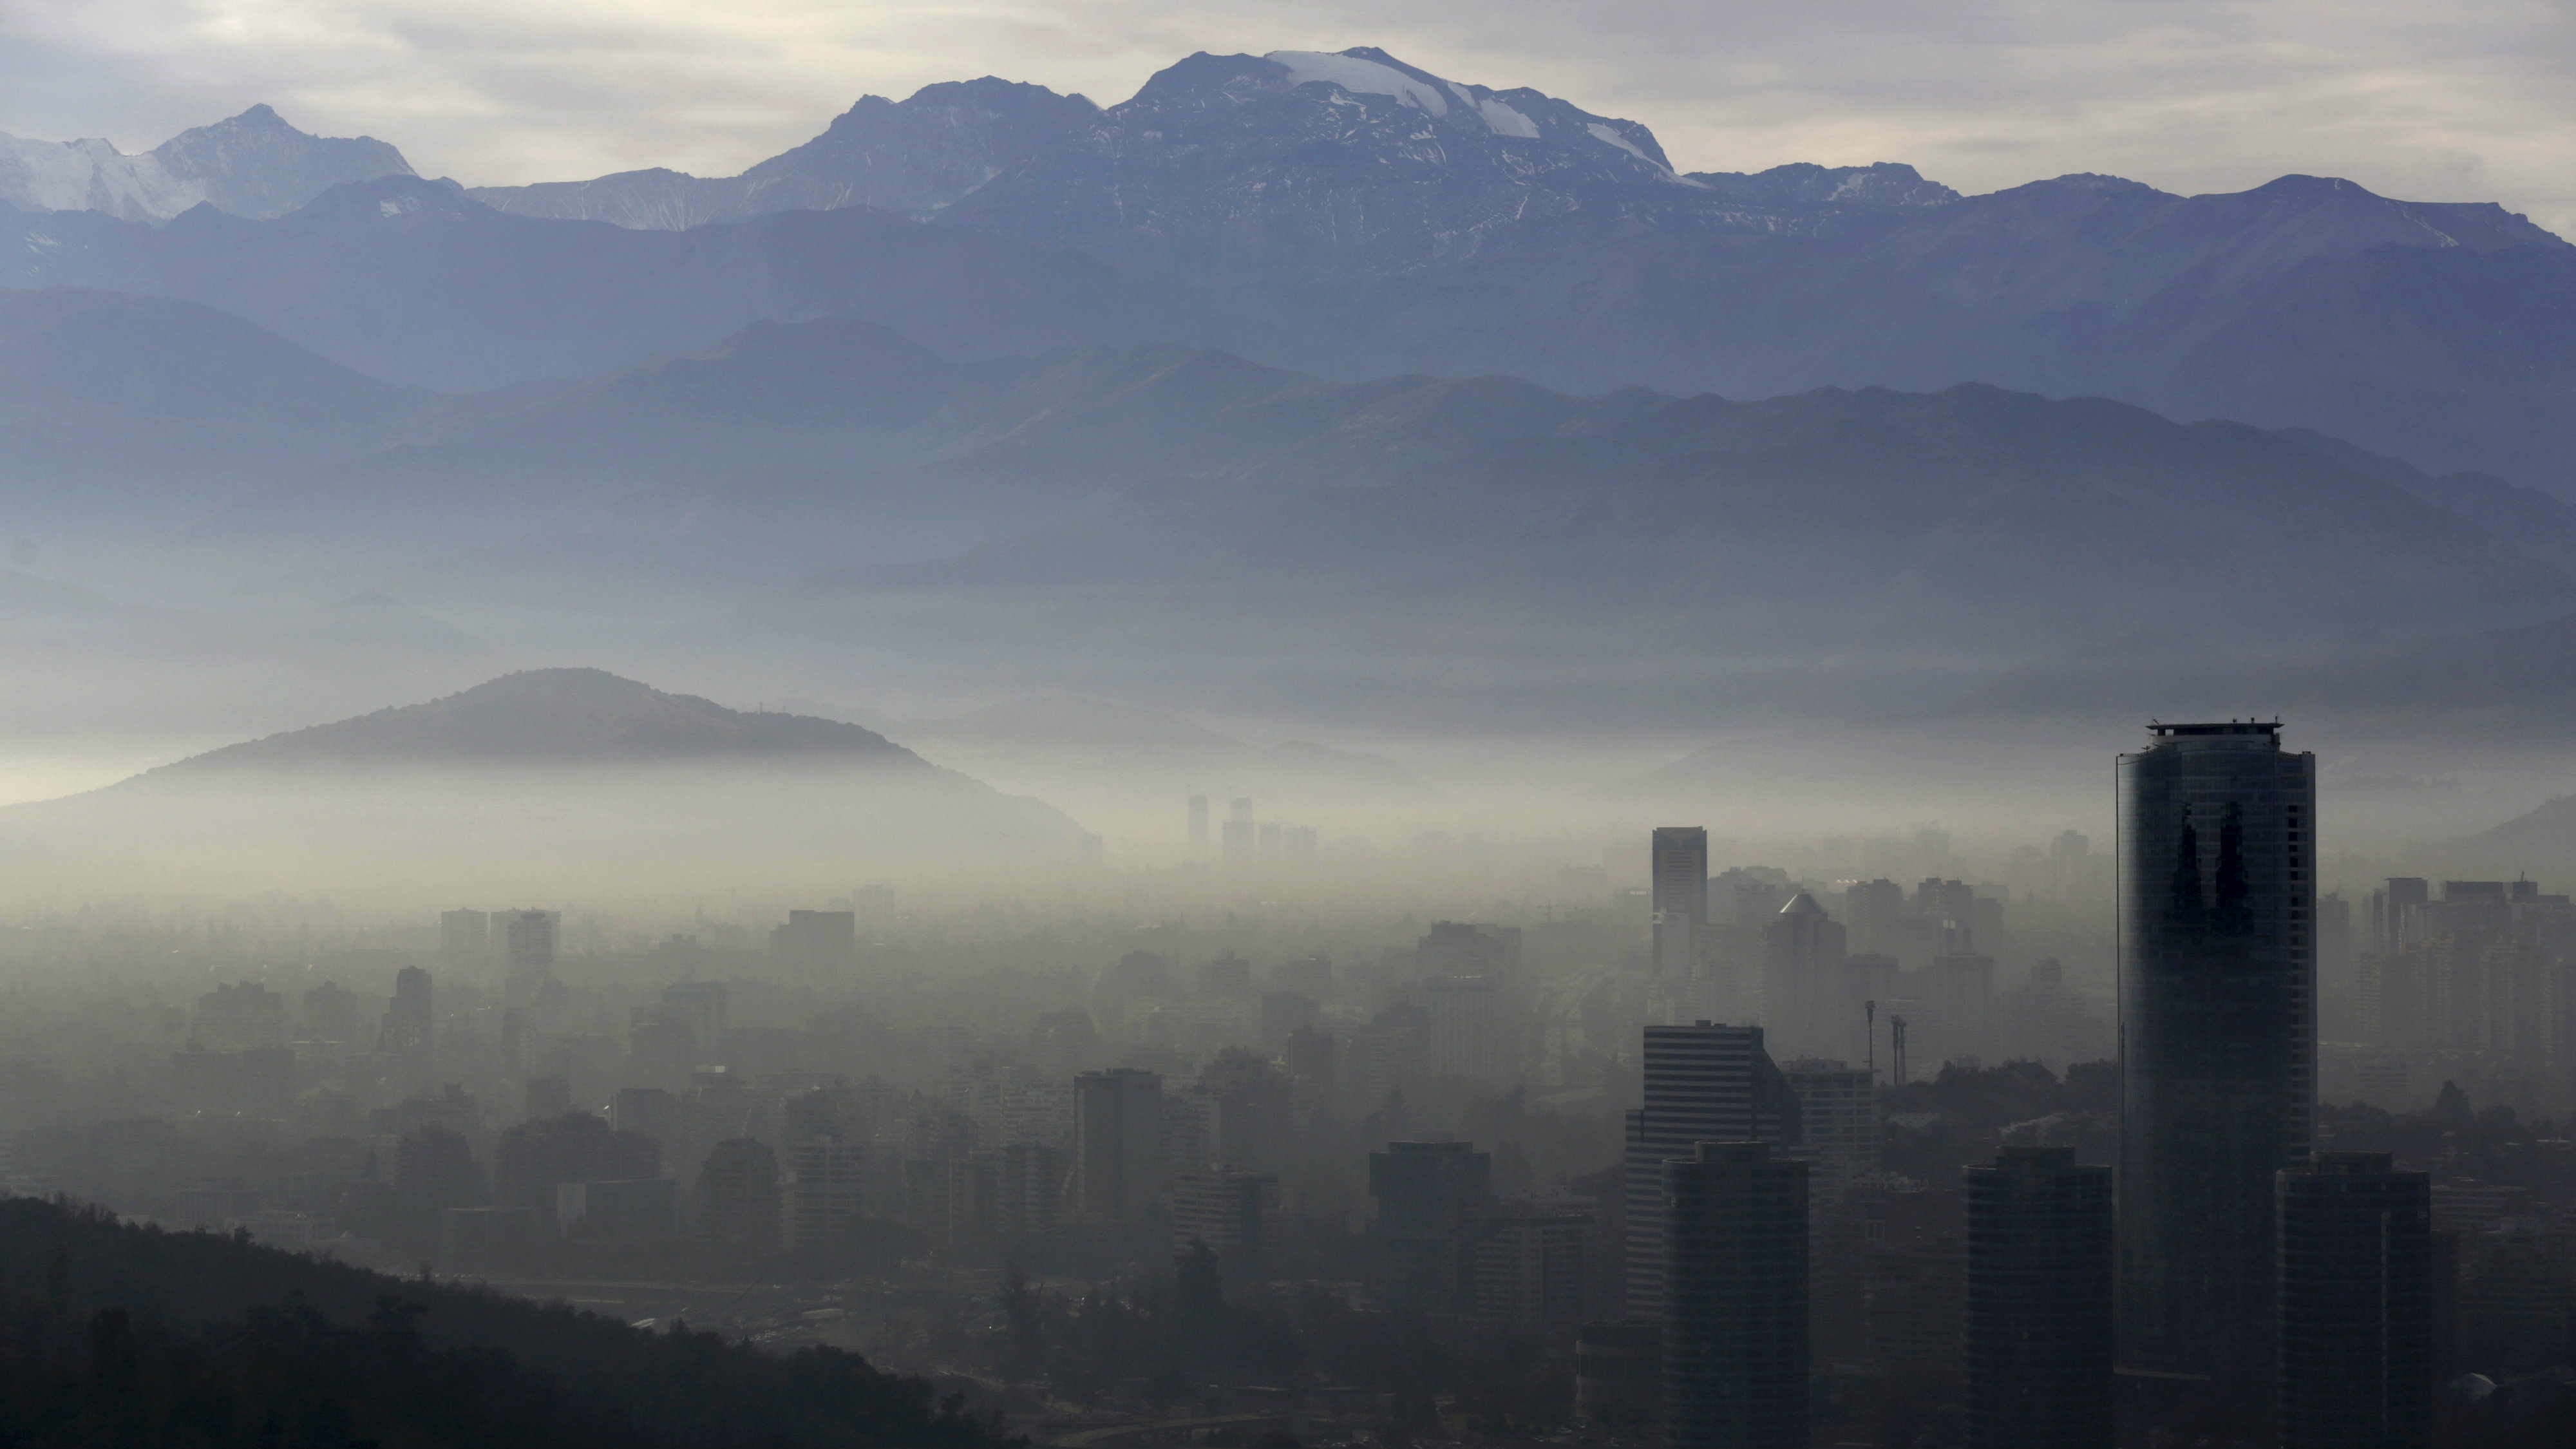 Smog shrouds Chile's capital Santiago, June 22, 2015. Chilean authorities declared an environmental emergency for the Santiago metropolitan region for Monday, forcing more than 900 industries to temporarily shut down and about 40 percent of the capital's 1.7 million cars off the roads. The emergency, the first since 1999, will be in place for 24 hours and can be extended further if authorities deem conditions have not improved.